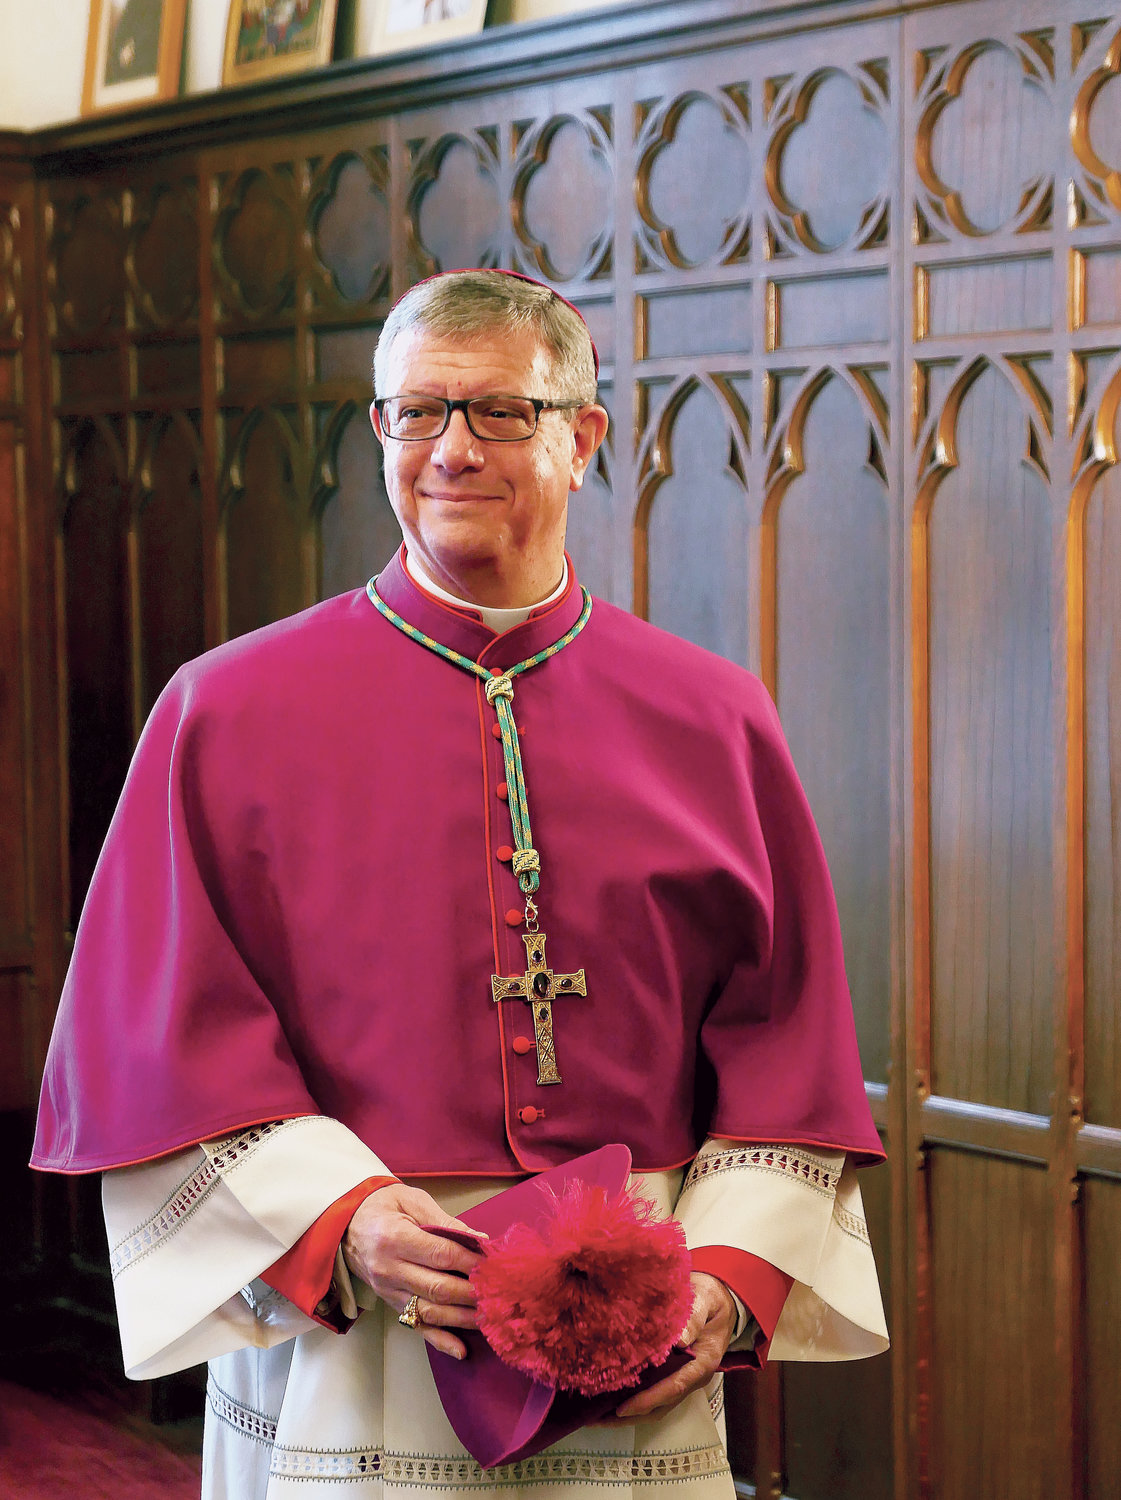 When Bishop-elect Gerardo J. Colacicco and Bishop-elect Edmund J. Whalen recently had their official portraits taken at the Cardinal's Residence in Manhattan, Catholic New York was there to take these shots for the cover of the special 40-page wraparound section in advance of their Mass of Ordination as bishops Dec. 10.